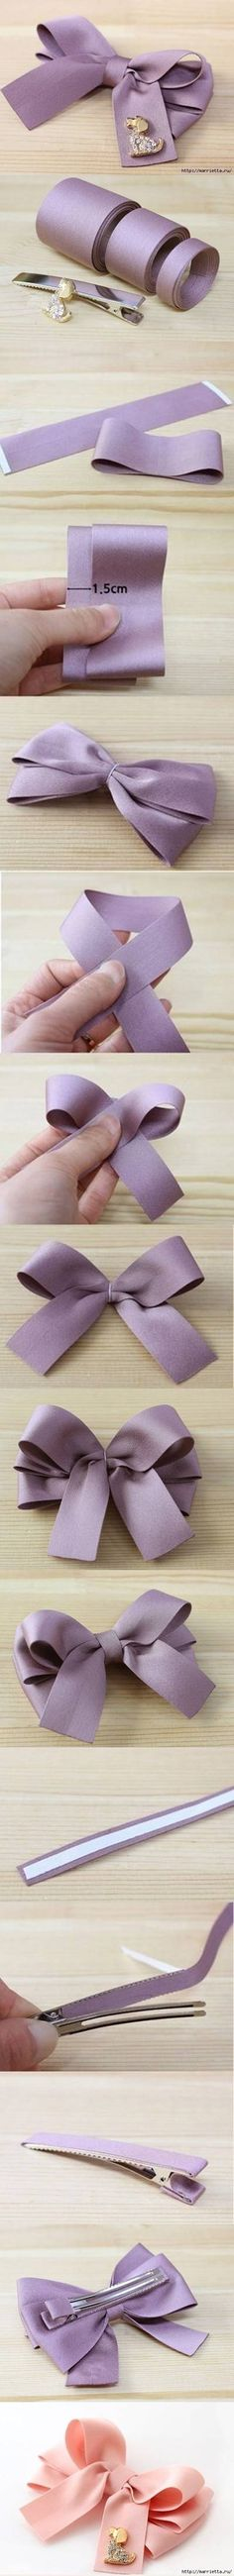 DIY Simple Bow Hairpin